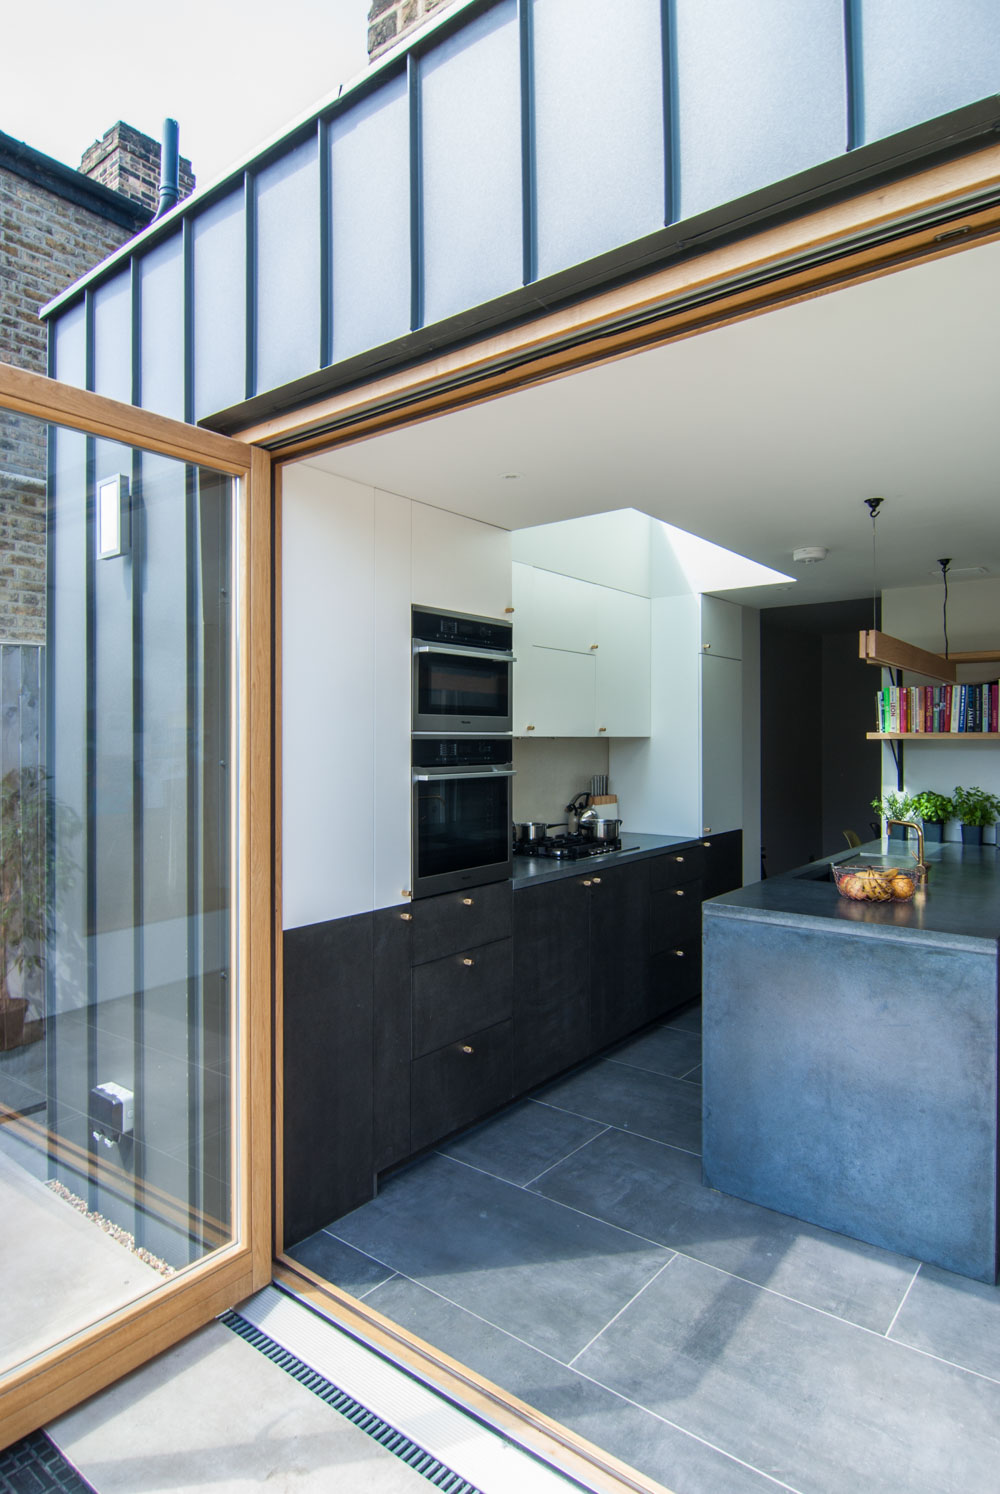 A closer look at the zinc cladding and large oak doors.